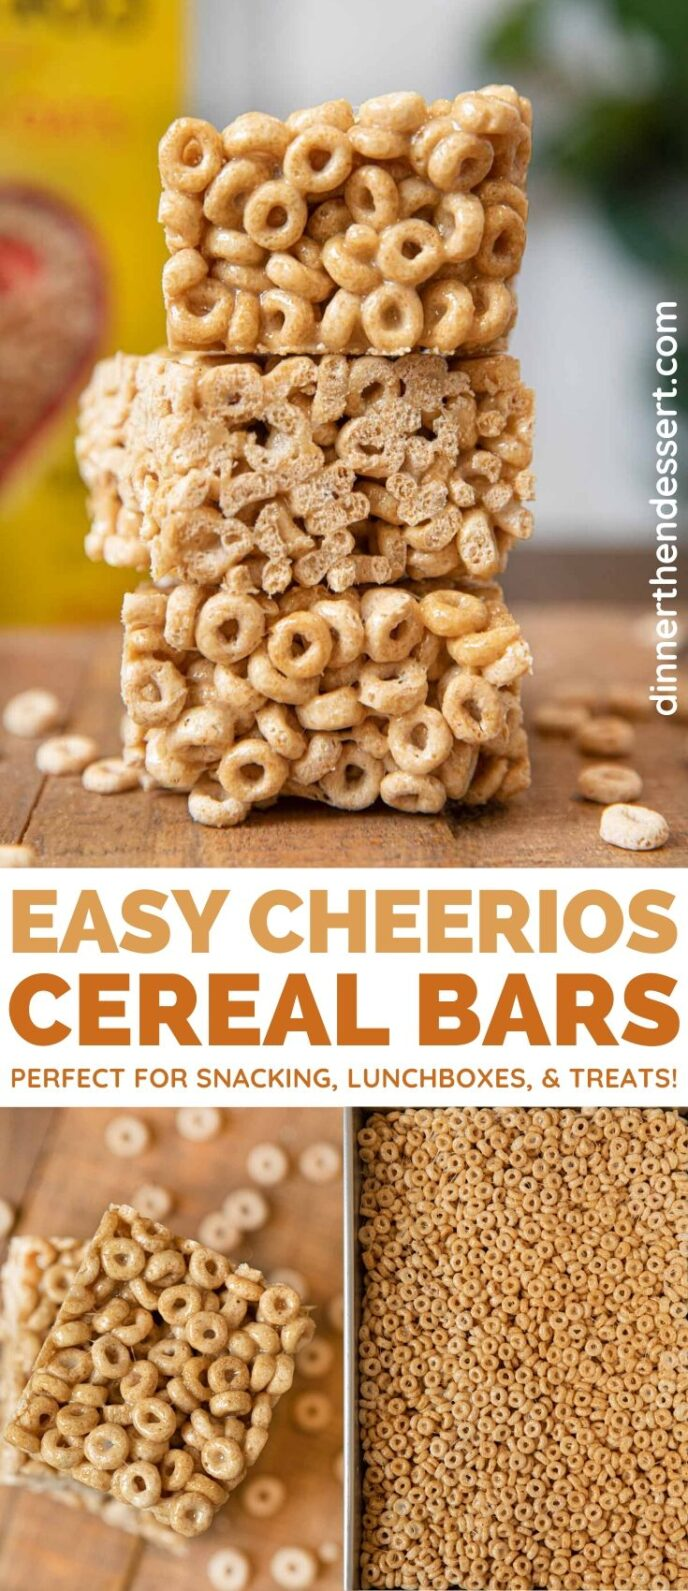 Cheerios Cereal Bars collage